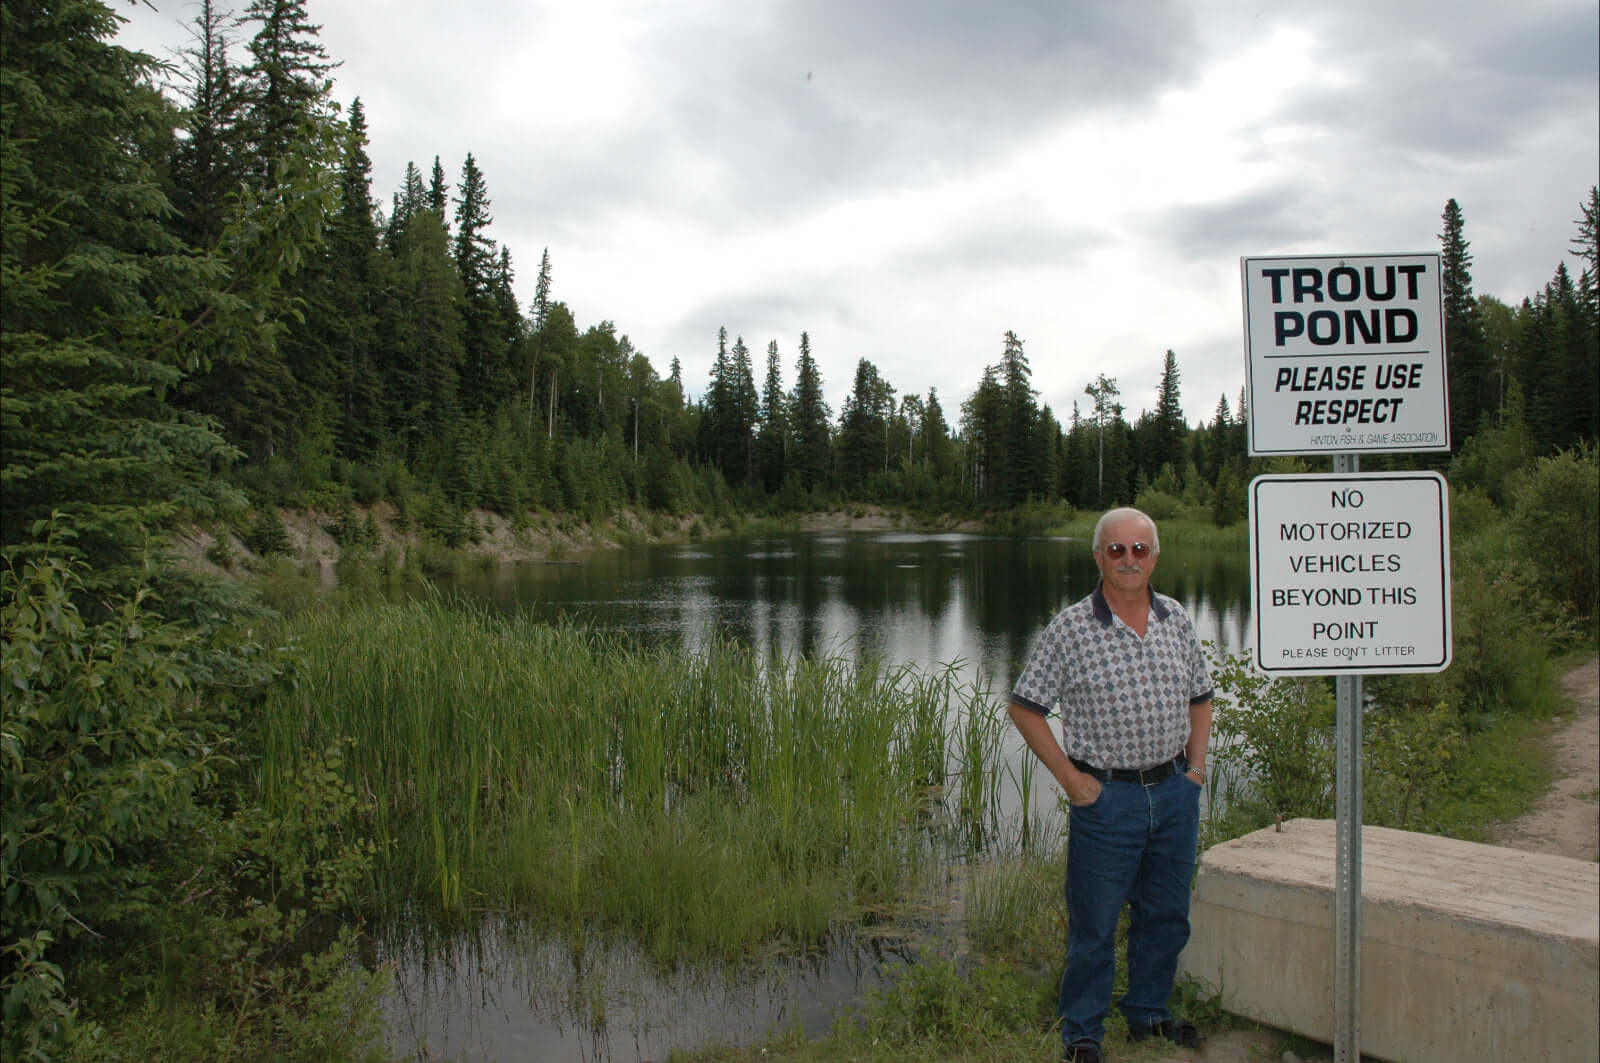 The Hinton Fish and Game Association maintains the Trout Pond on Highway 40 north, which is regularly stocked.